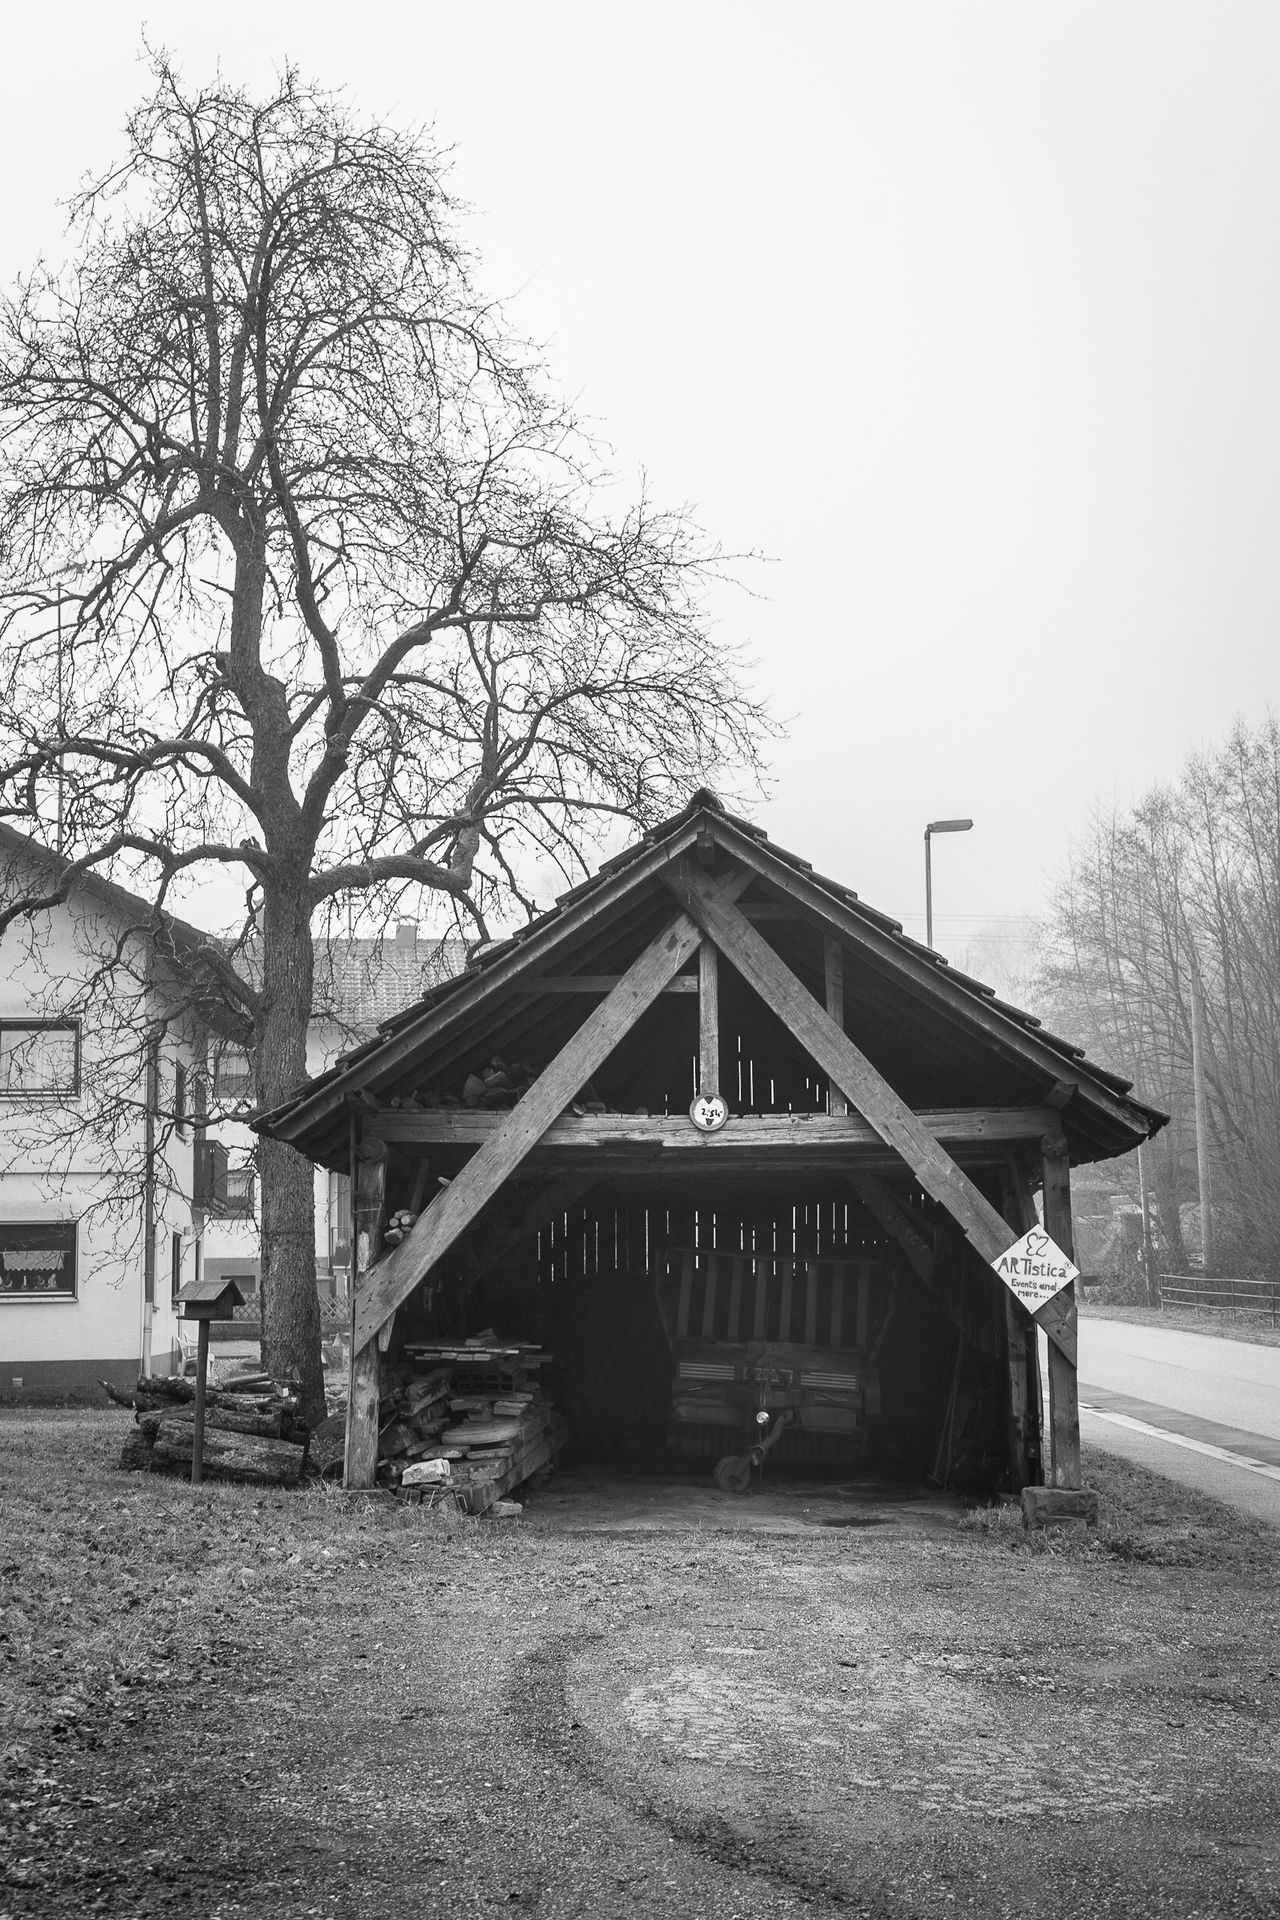 ••• THAT LITTLE BARN ••• ---------------------------------------------- Tree Built Structure Architecture Outdoors No People Building Exterior Bare Tree Day Gazebo Sky Eberbach Baden-Württemberg  Germany Heidelberg Barn Farmer Blackandwhite Monochrome Blackandwhite Photography South Old Buildings Black&white